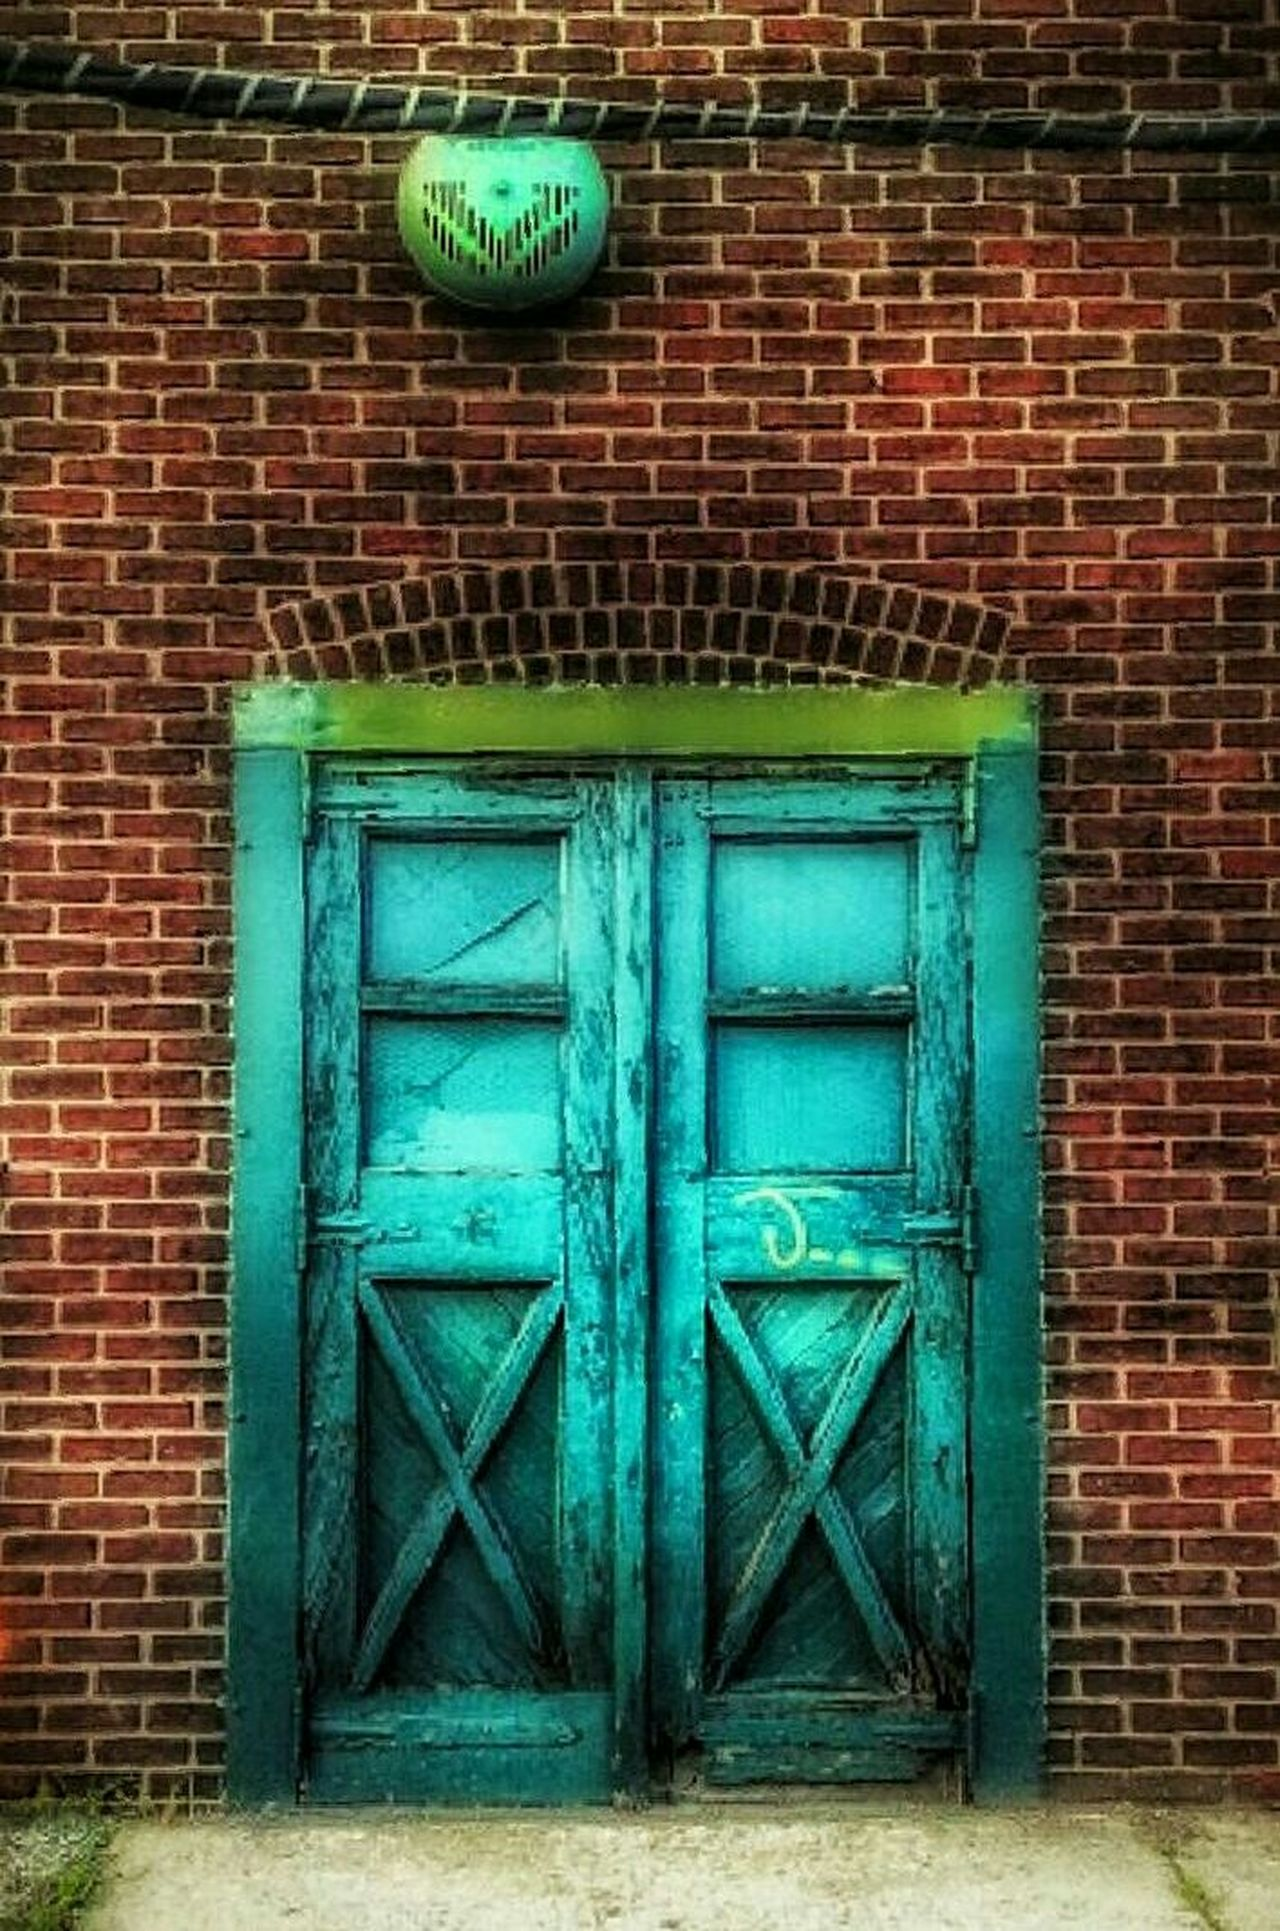 Green Lantern... Door Architecture Closed Brick Wall Outdoors Building Exterior Built Structure AMPt - My Perspective AMPt - Ethereal AMPt Community The Street Photographer - 2017 EyeEm Awards Brickporn Doors AMPt - Street Urban Exploration AMPt - Abandon Green Green Color Abandoned Places Abandoned Buildings Abandoned & Derelict Close-up